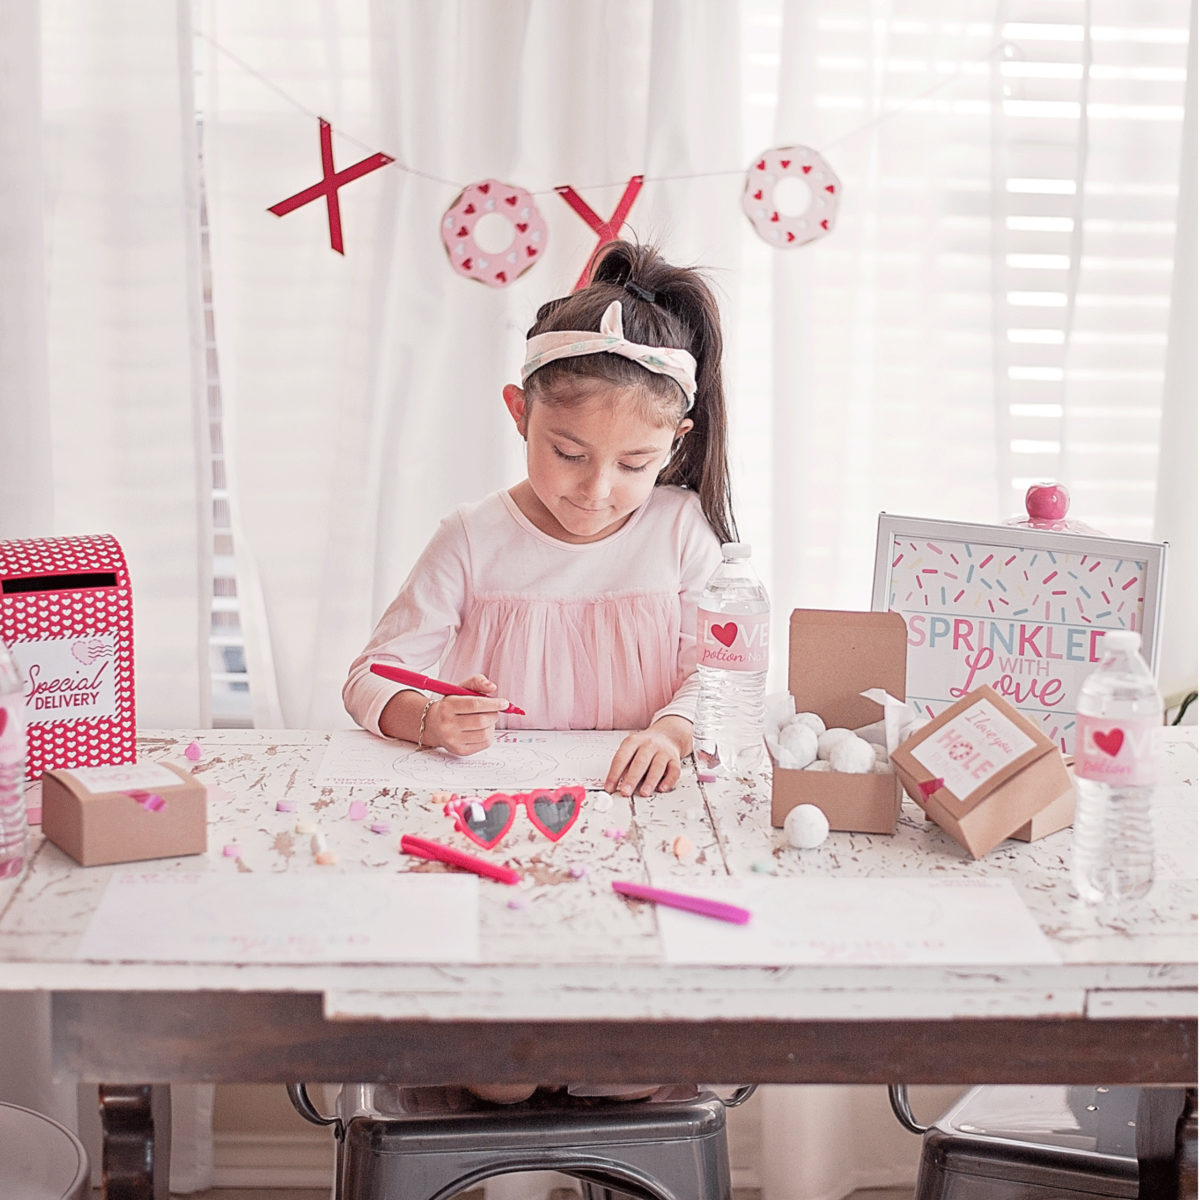 XOXO Valentine's Day Breakfast Donut Party | Family Friendly by Posted Fete